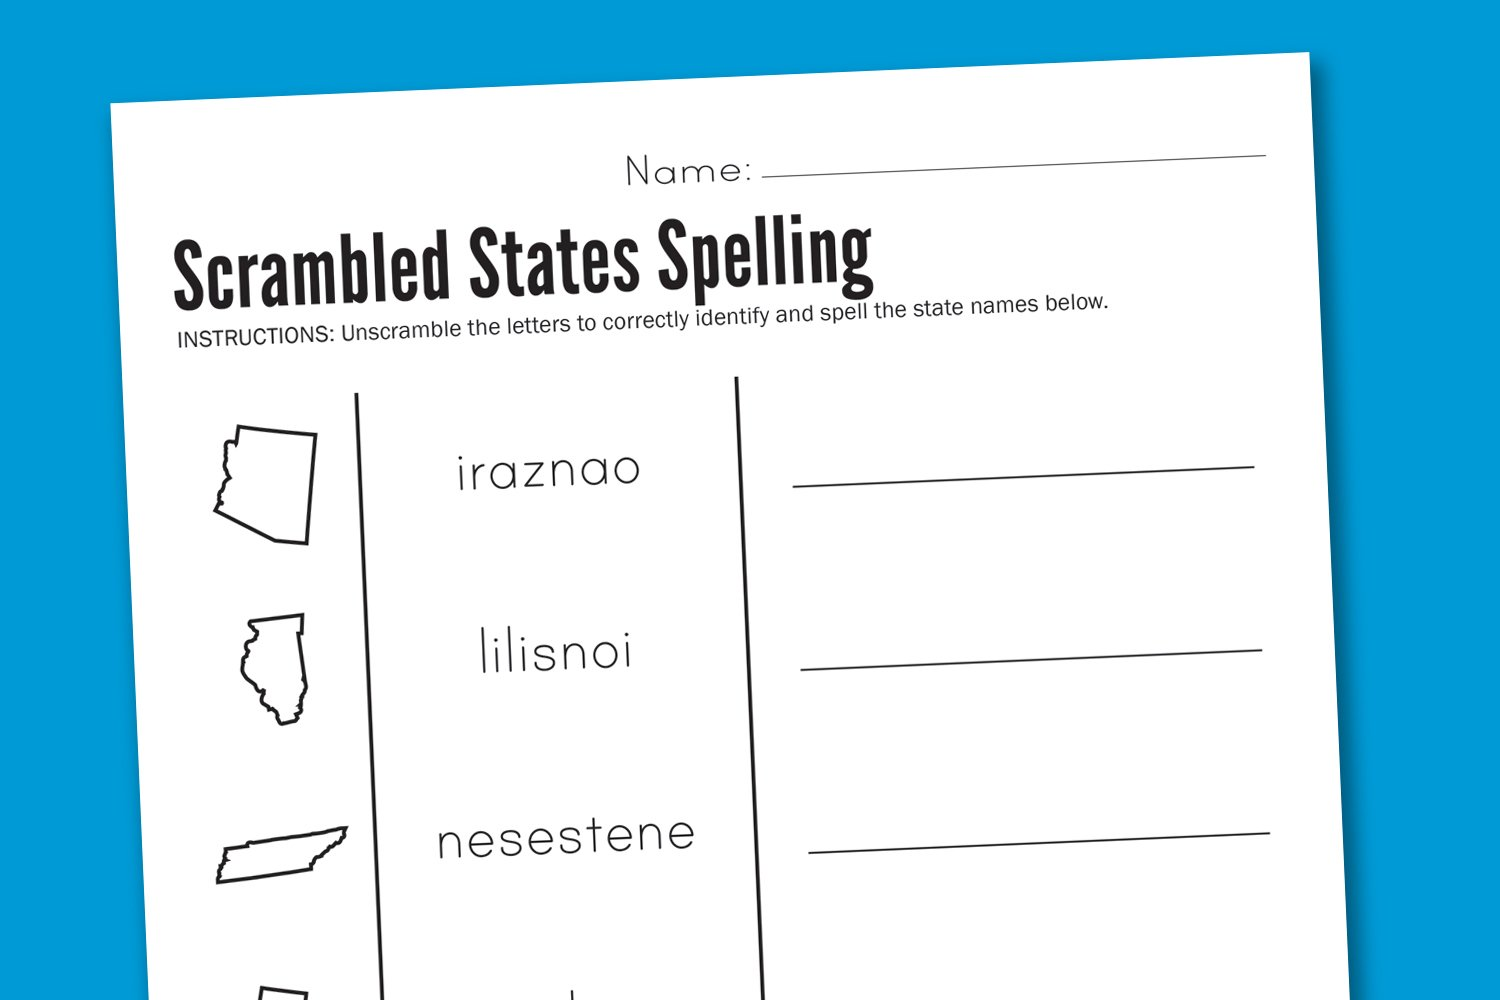 Worksheet Wednesday: Scrambled States Spelling - Paging Supermom